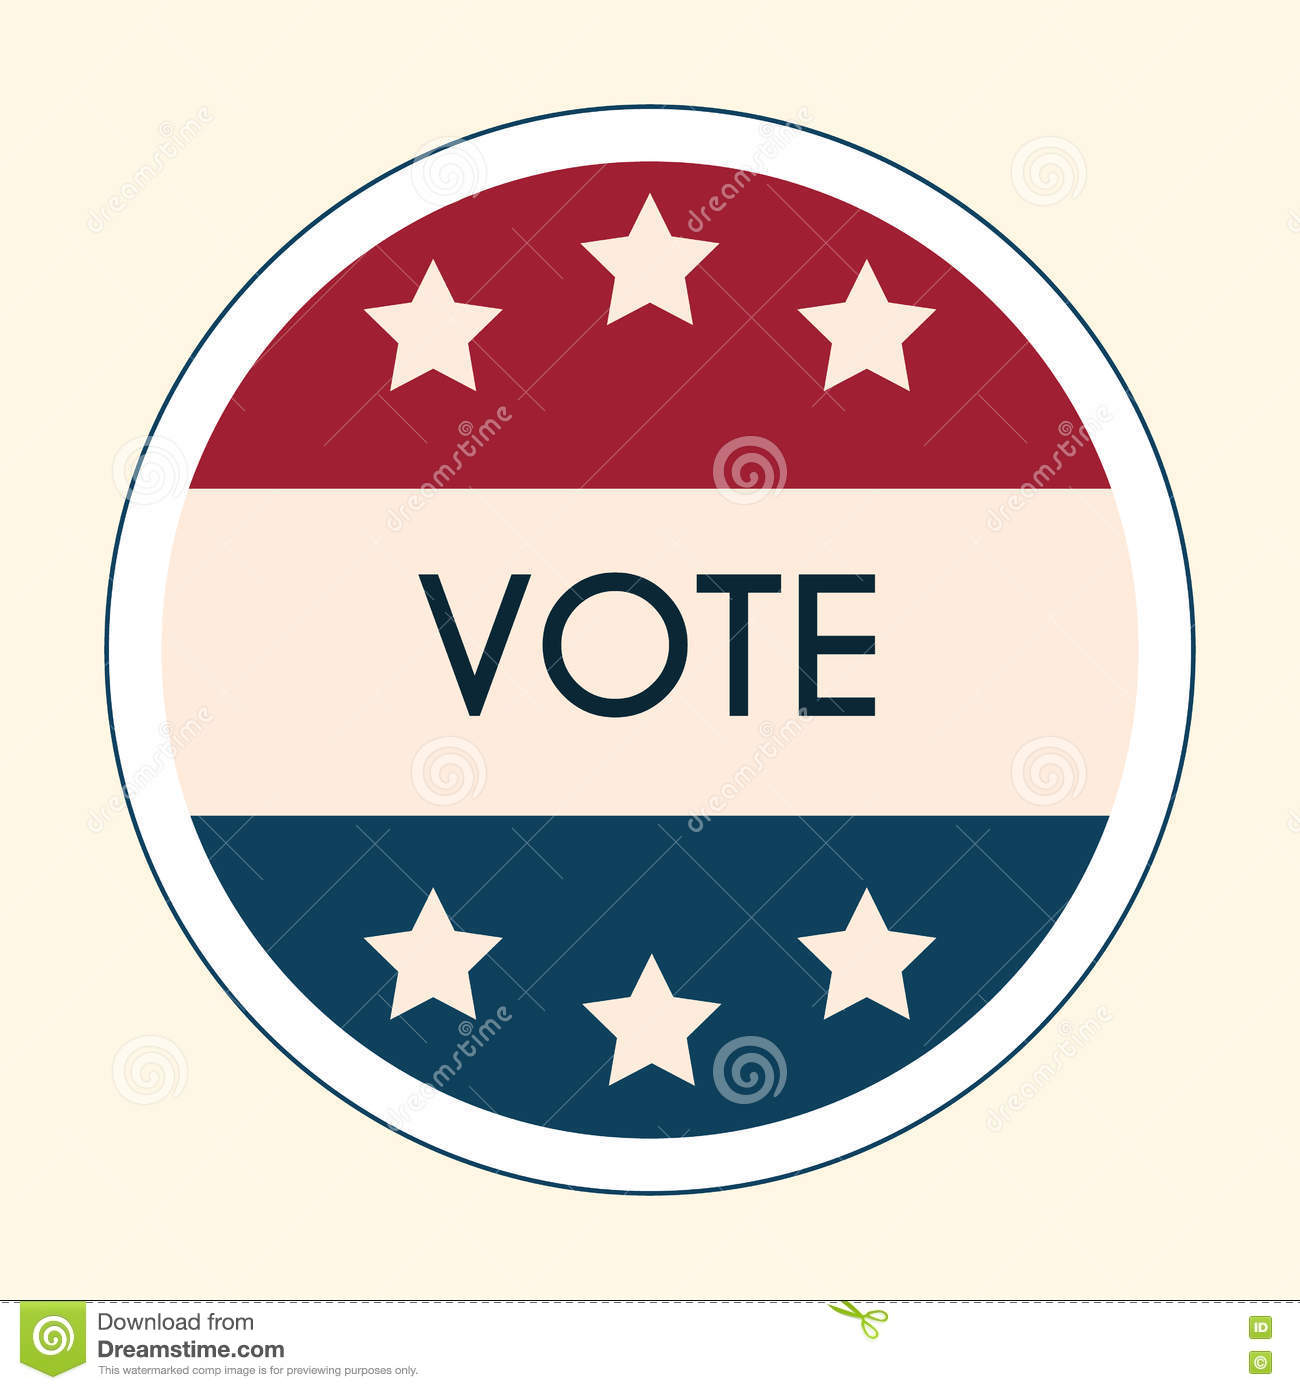 Election voting sticker and badge american flags symbolic elements red stripes and white stars